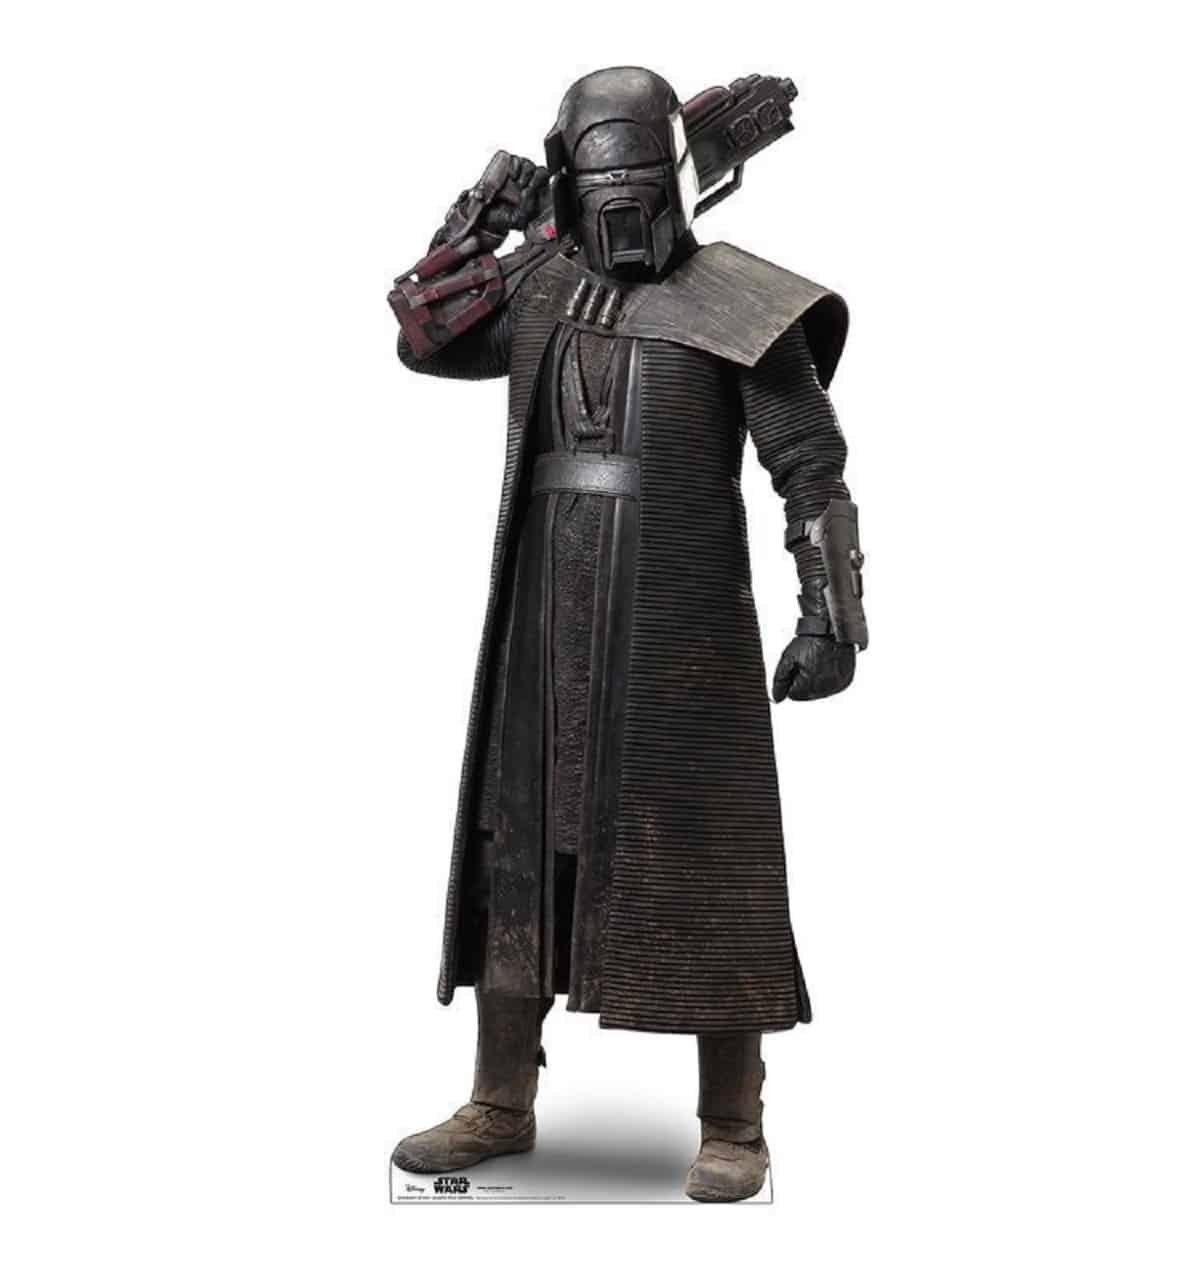 A Knight of Ren who specializes in long-range combat.